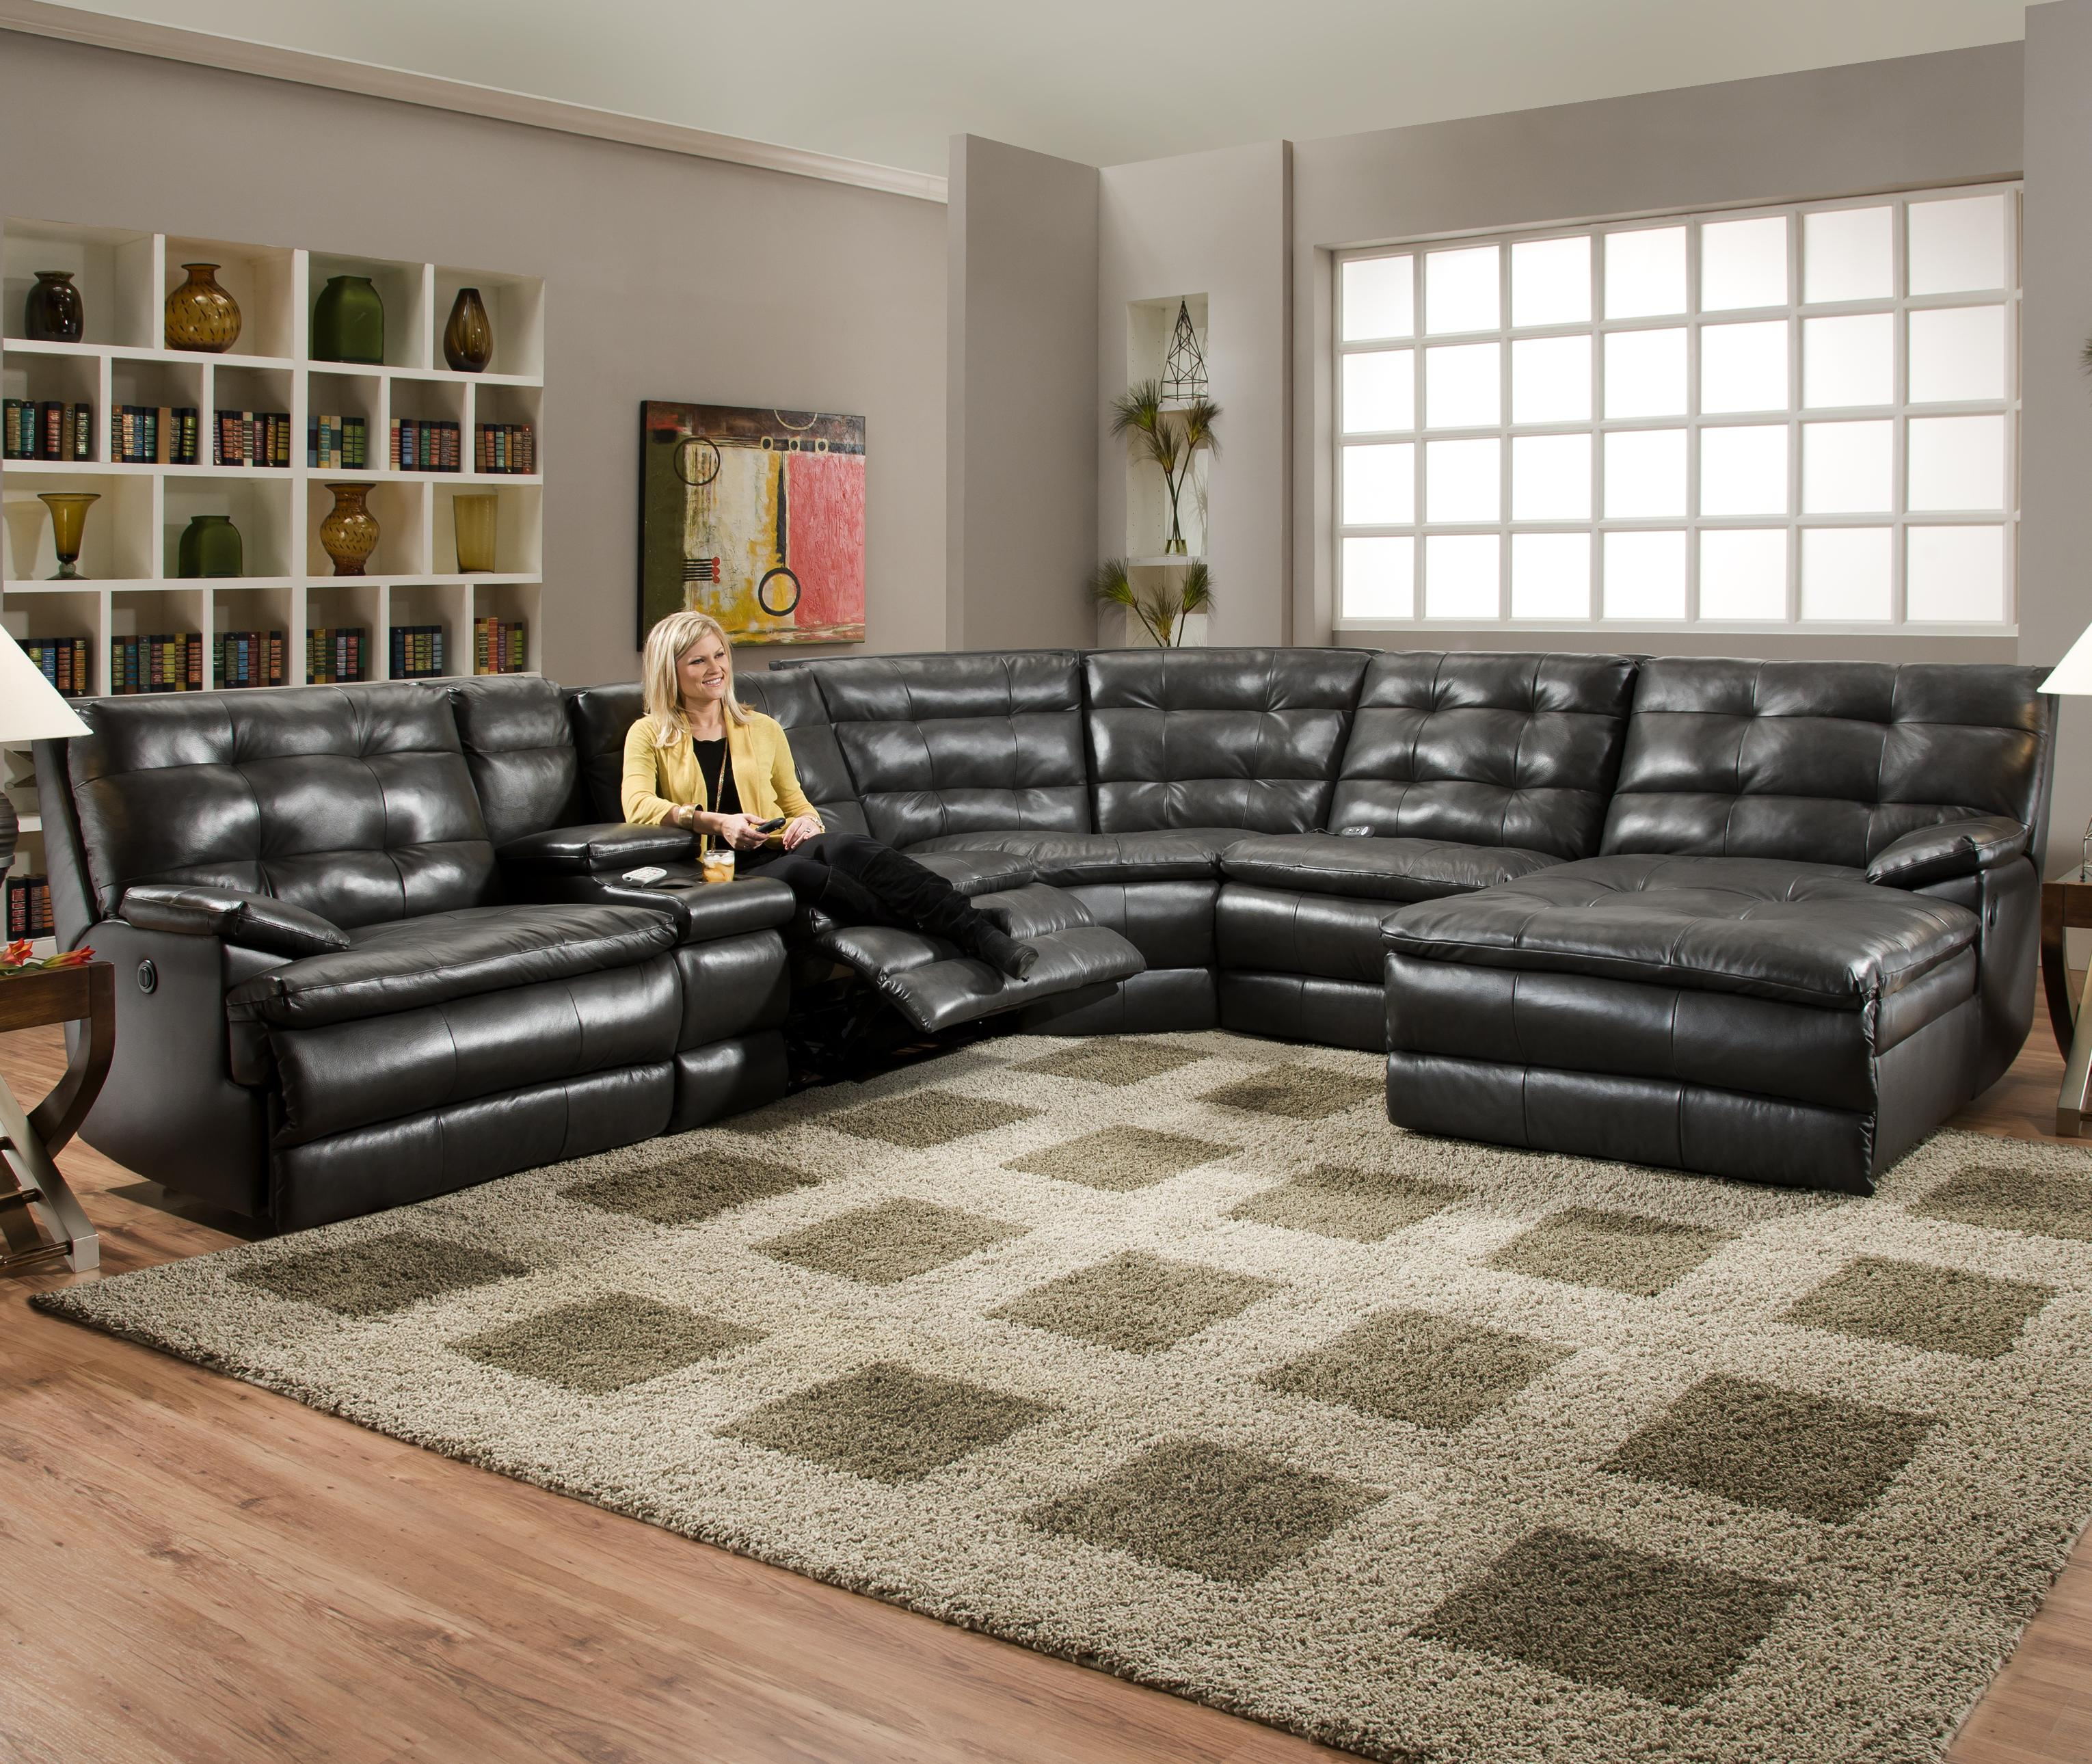 Furniture Gorgeous Style Sectional Sofa With Recliner For Your